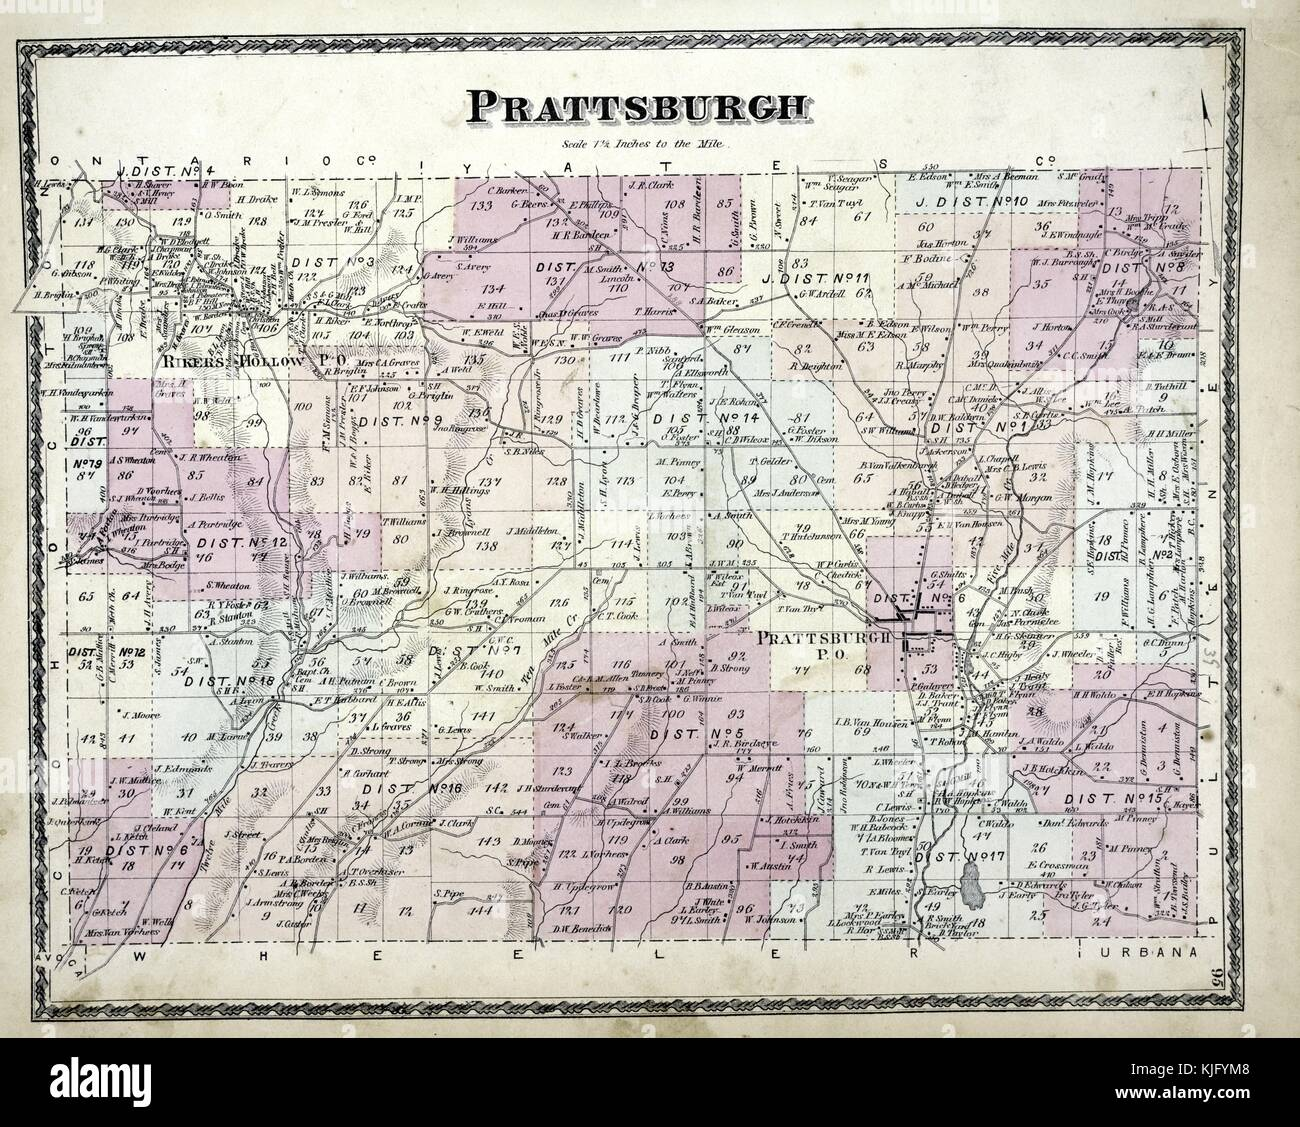 Engraved map image from an atlas, with original caption reading 'Prattsburgh Township', 1873. From the New - Stock Image